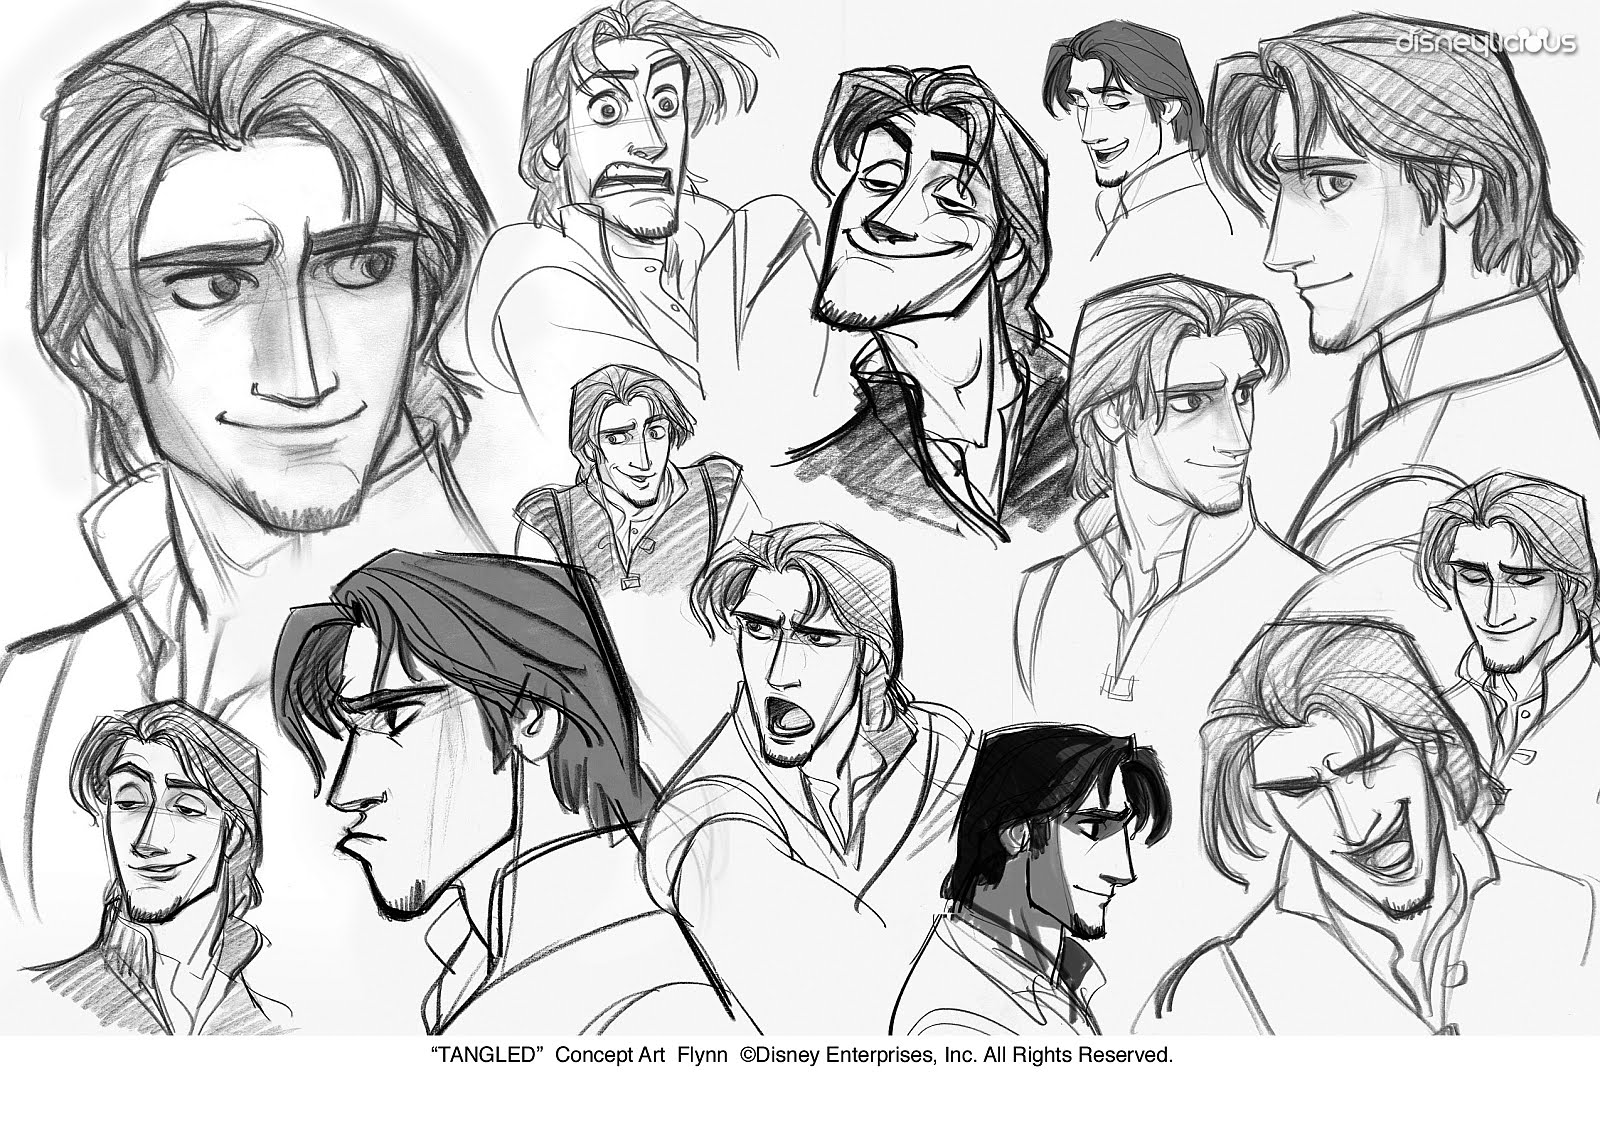 Line Drawings Of Facial Expressions : Glen keane tangled flynn imgkid the image kid